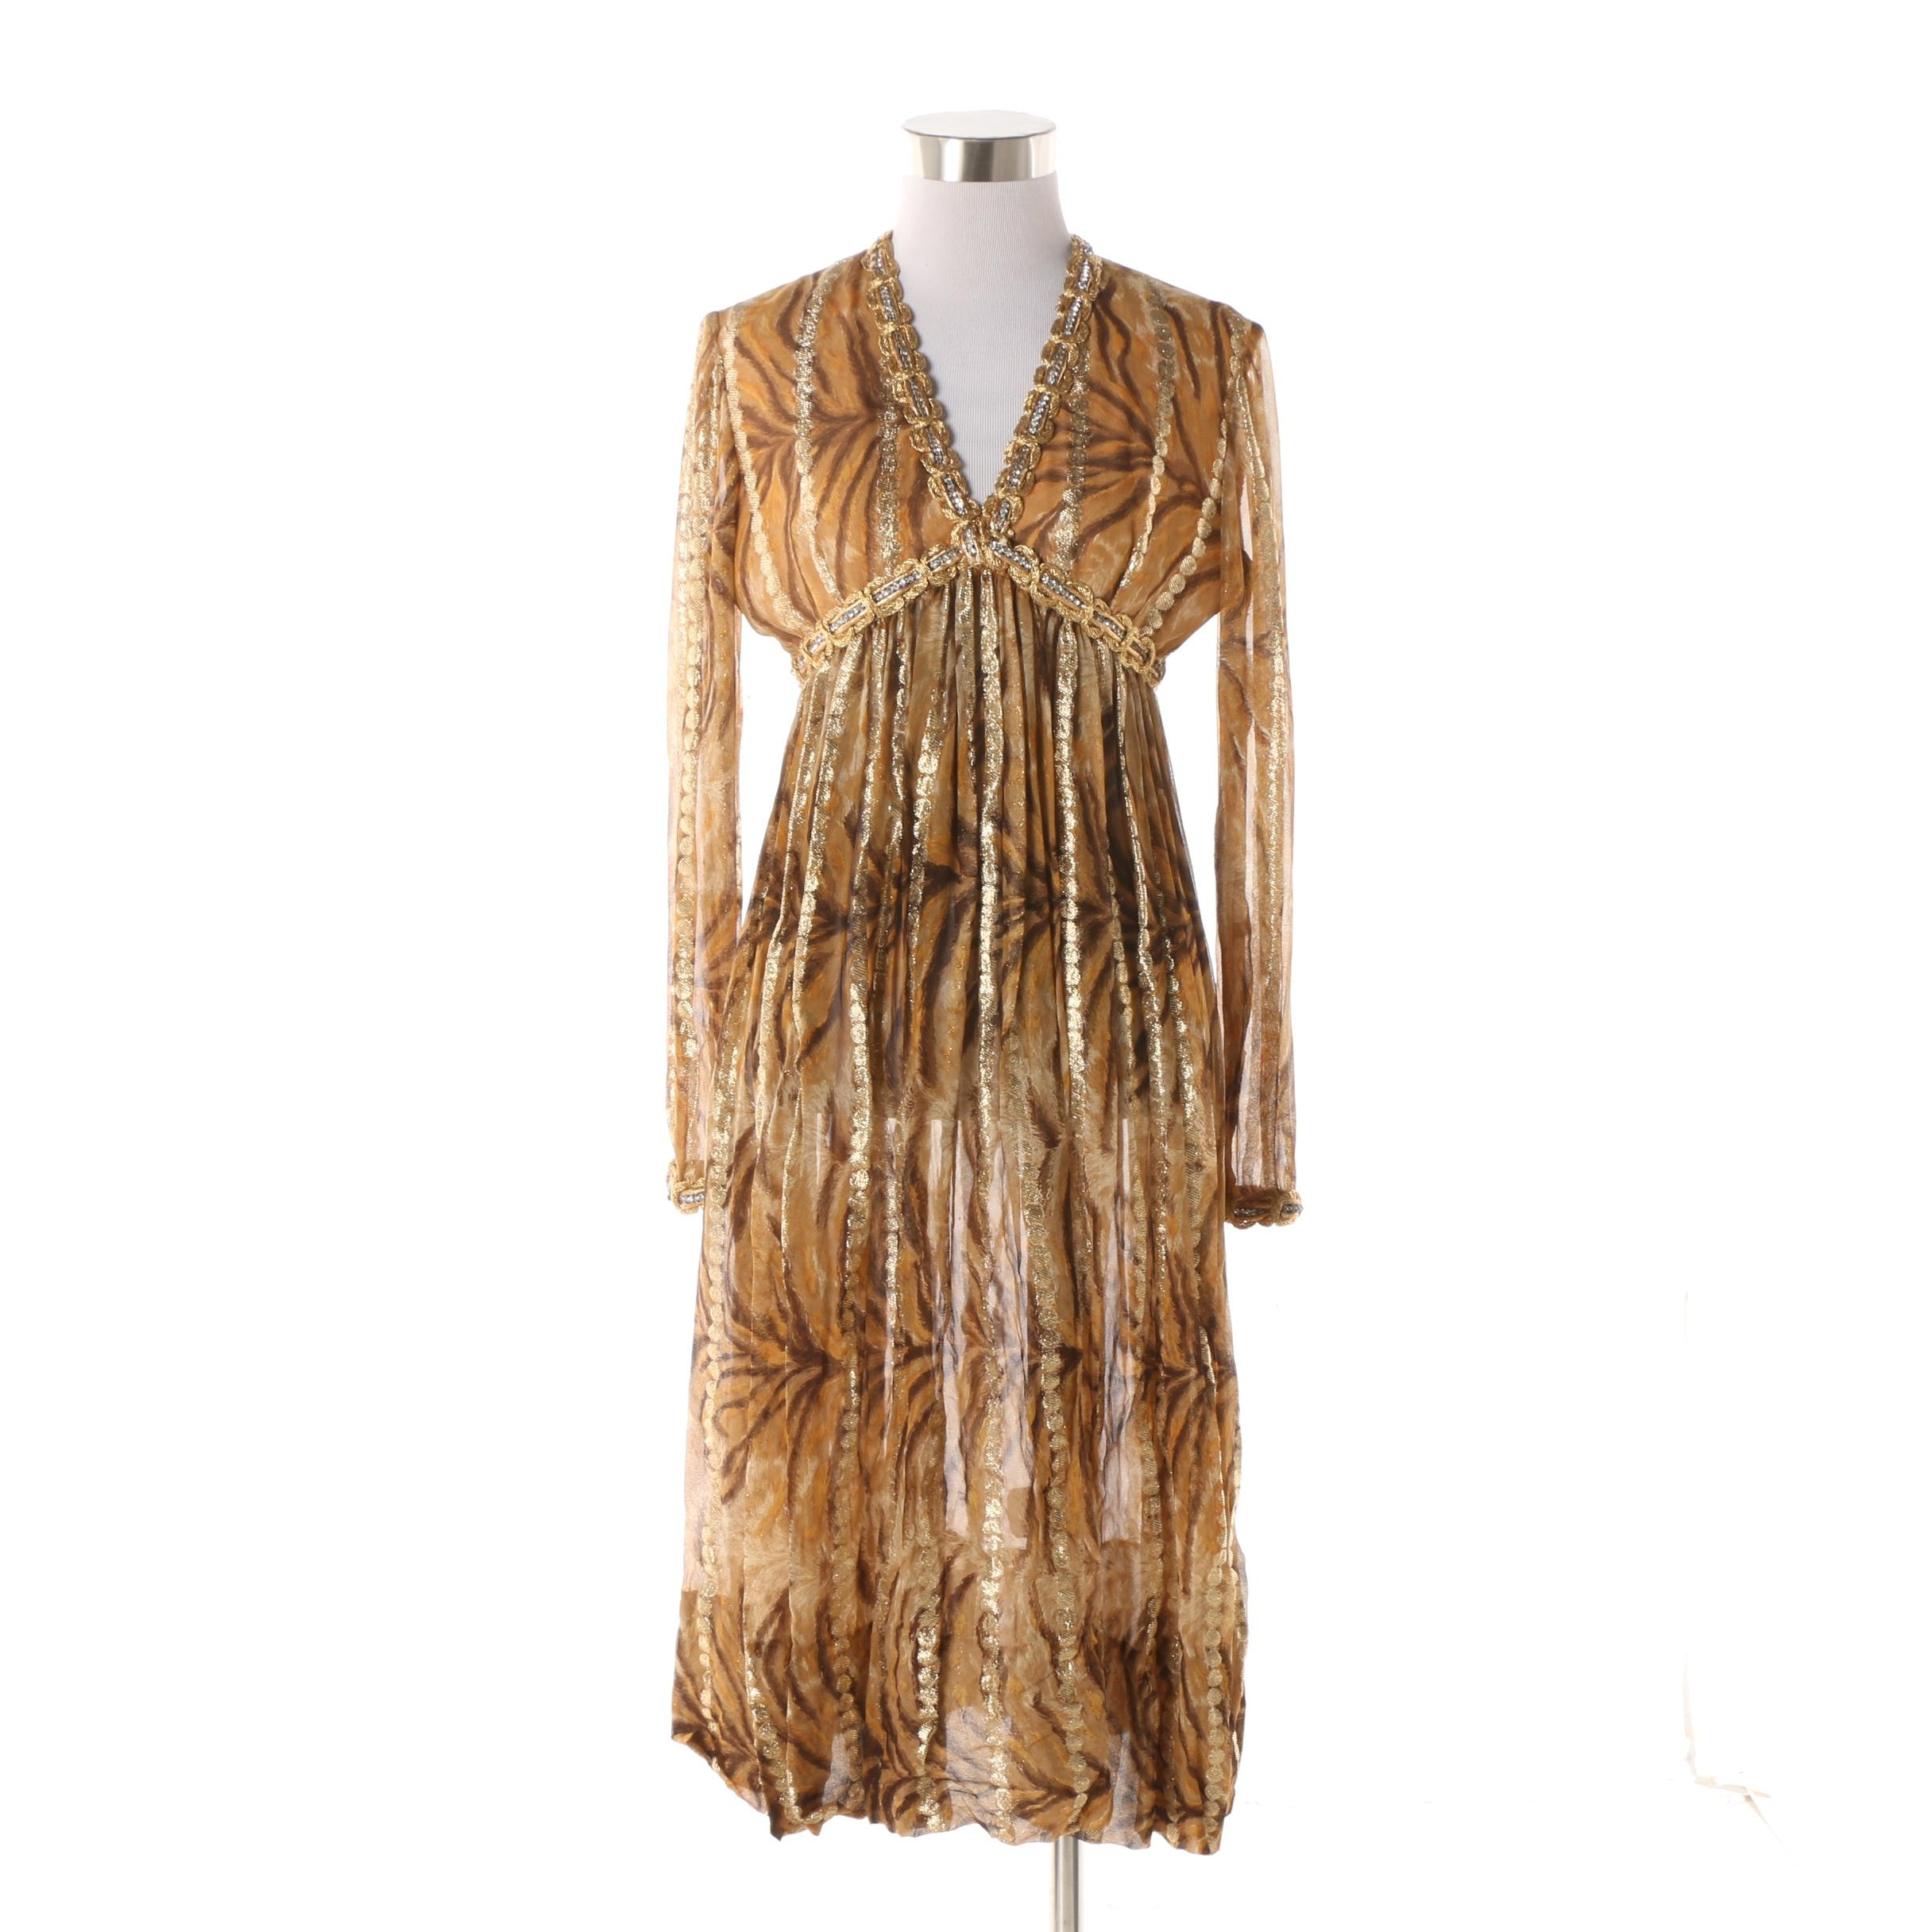 1960s Vintage Bill Blass Gold Tone Animal Print Silk Chiffon V-Cut Dress